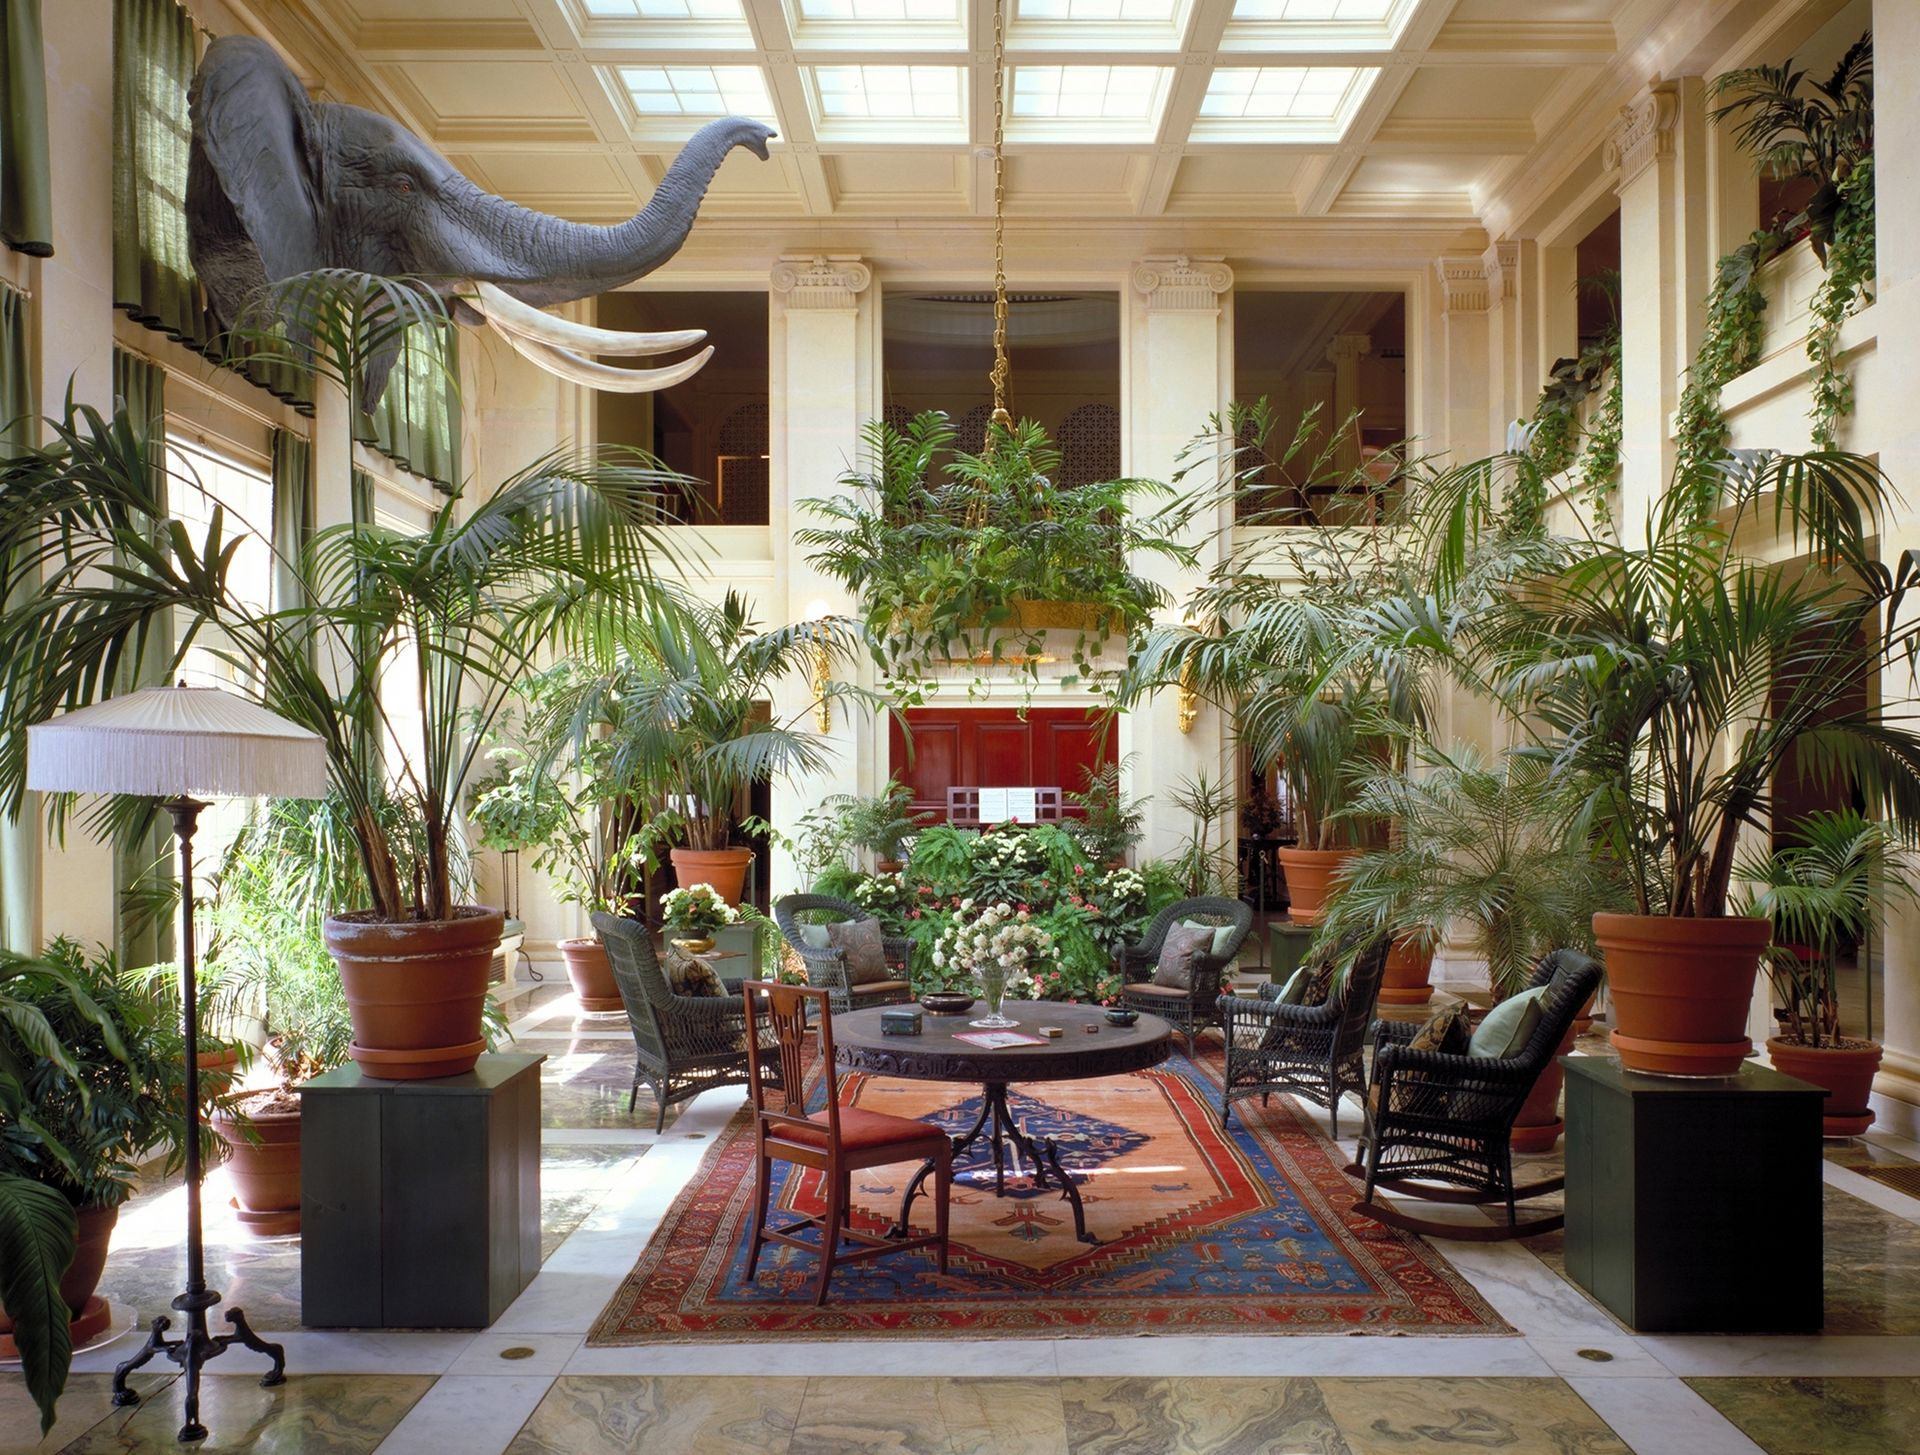 The conservatory is two stories tall and features ceiling windows and numerous plants.